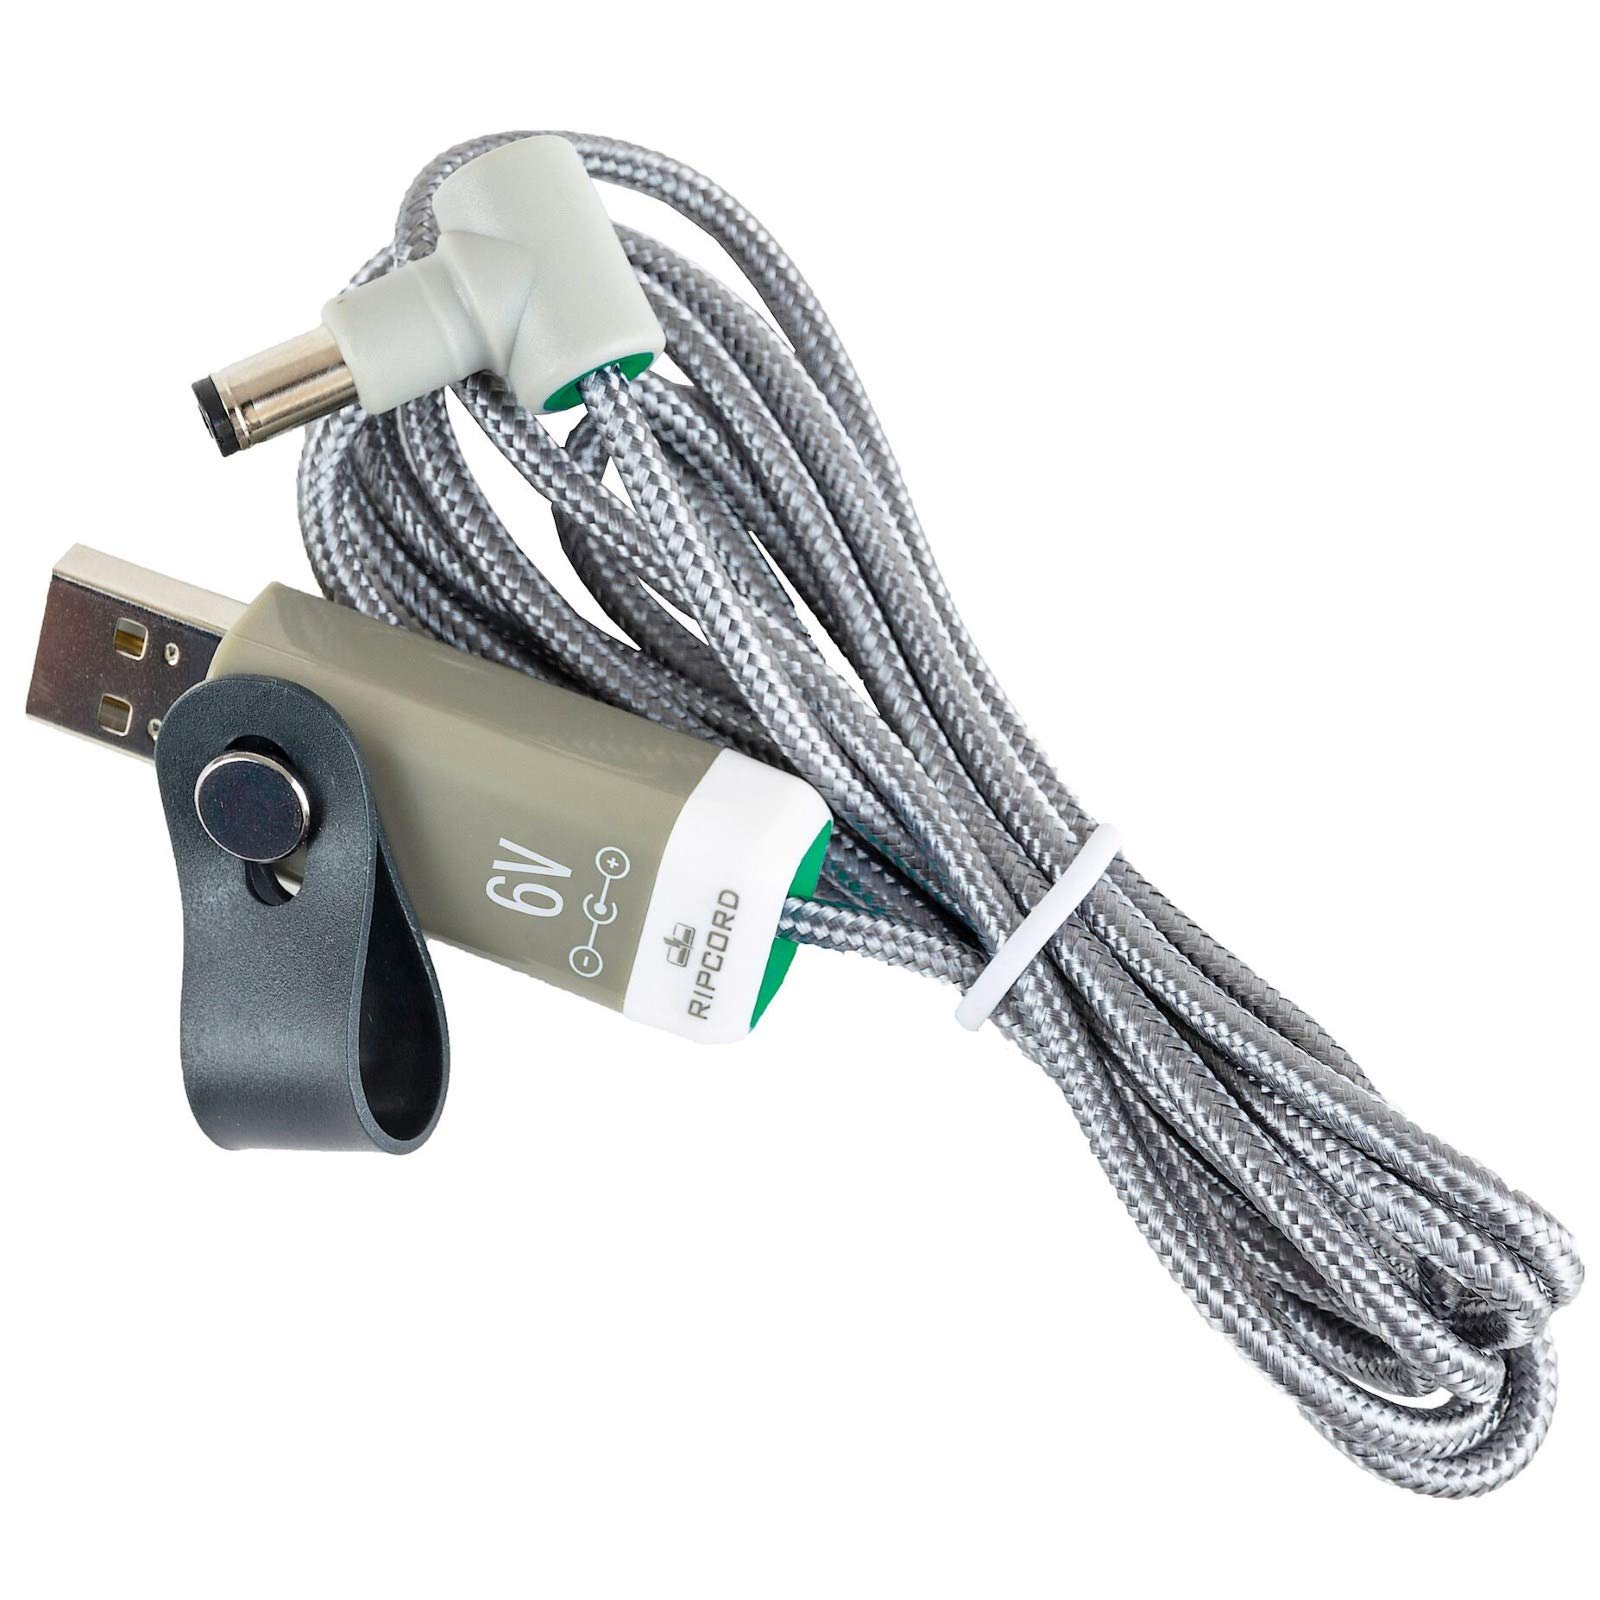 myVolts Ripcord - USB to 6V DC Power Cable Compatible with The Tommee Tippee Baby Monitor 1094S Parent Unit by MyVolts